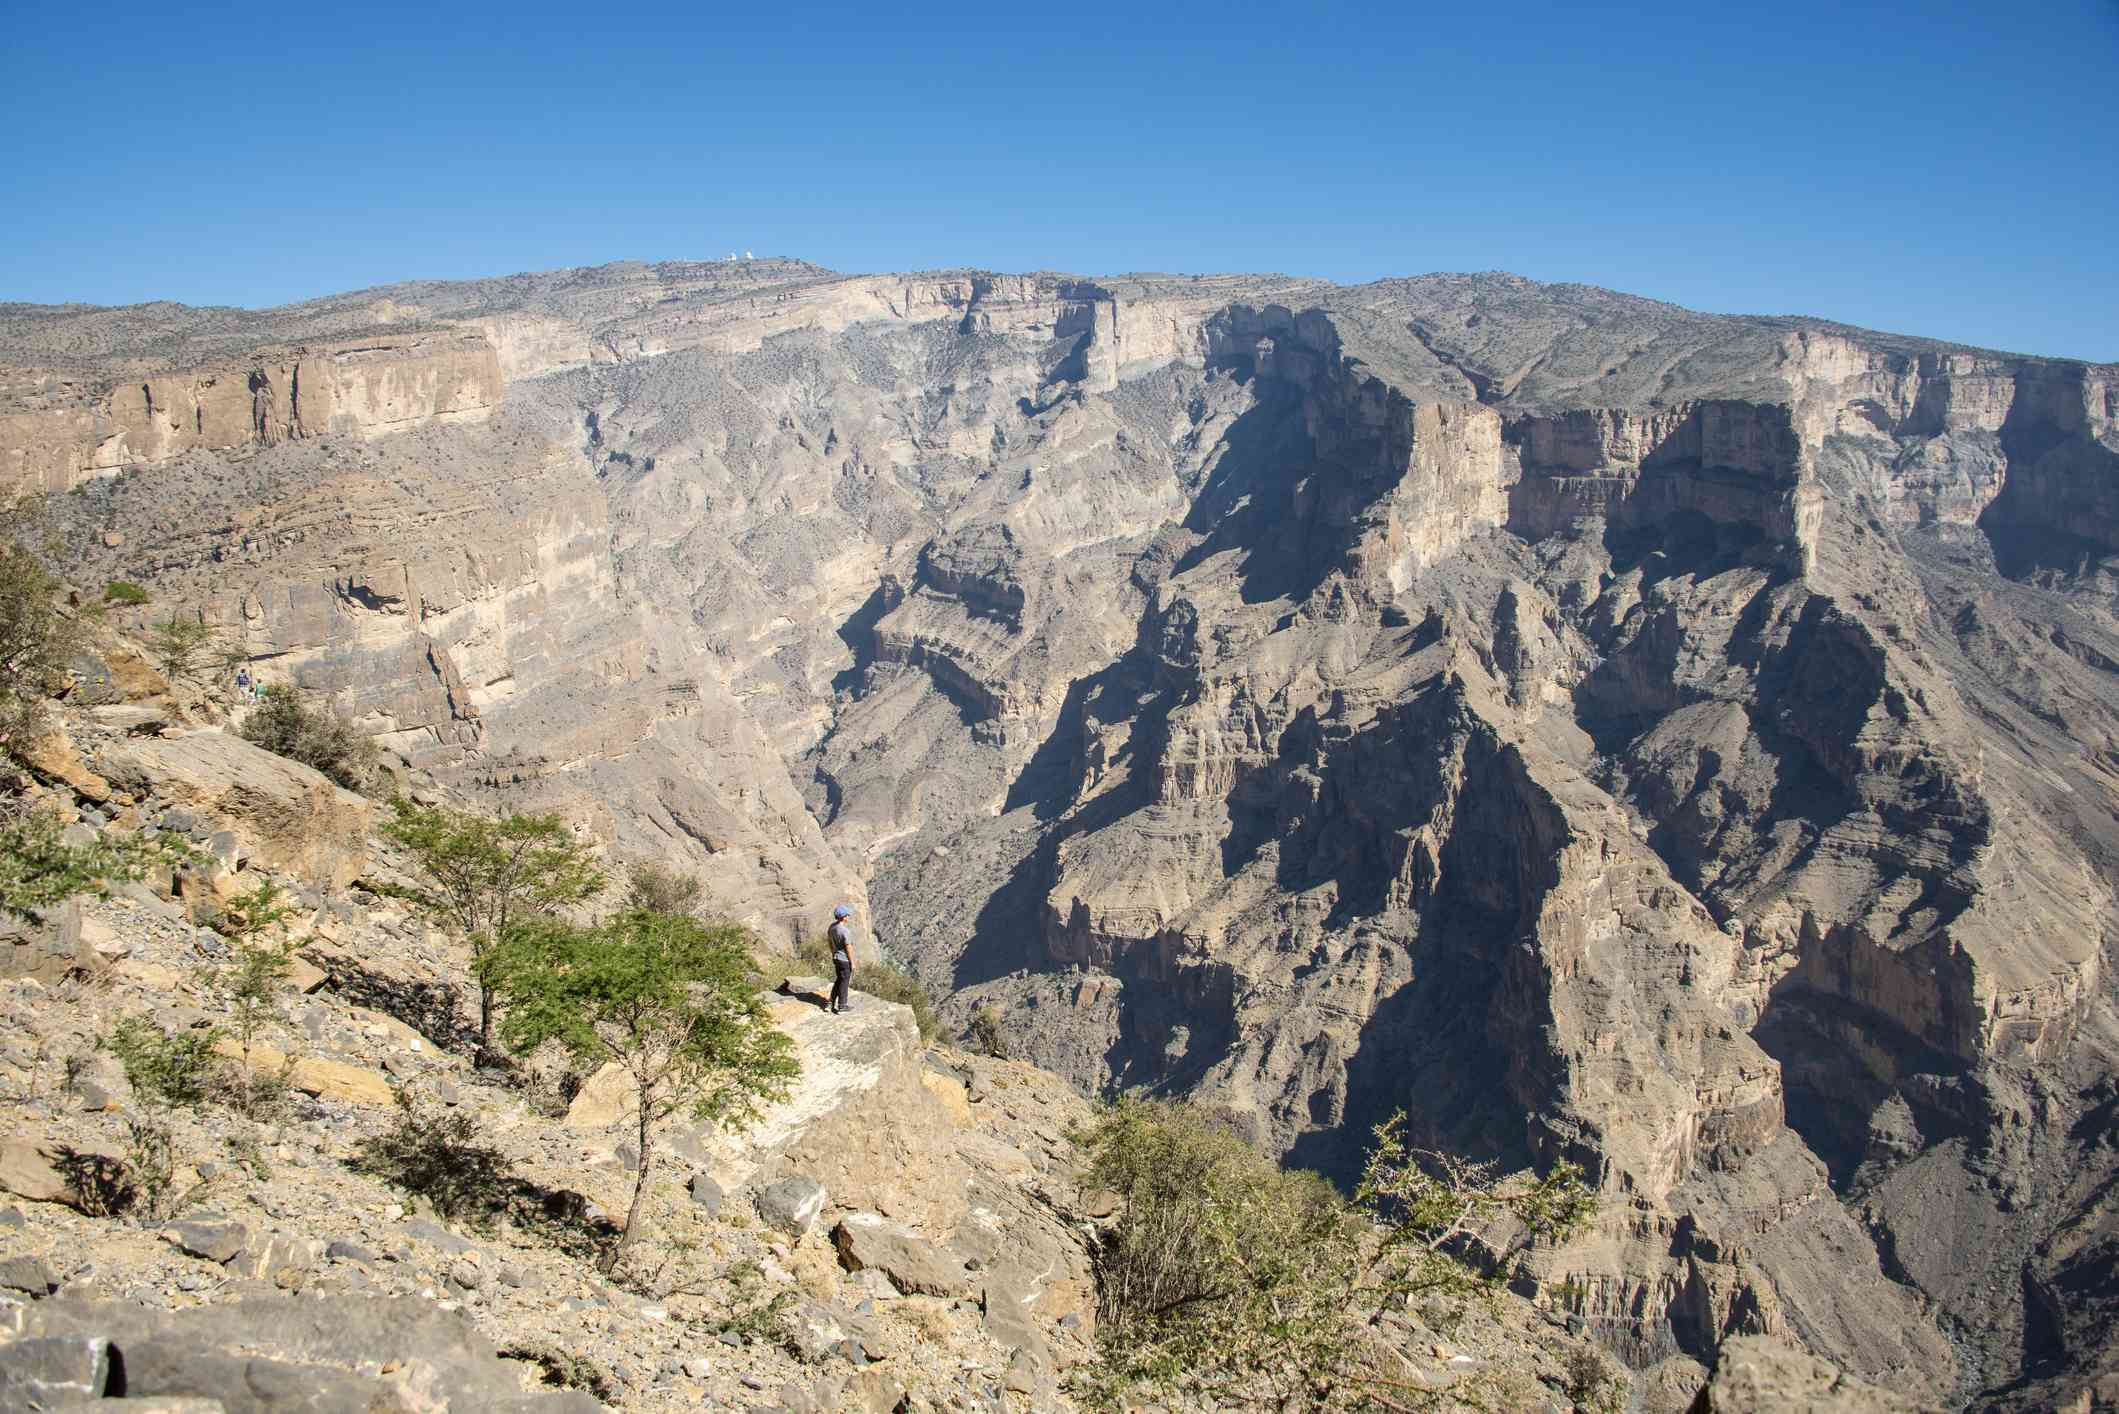 Distant view of a man at the top of Jebel Shams with a canyon in the distance